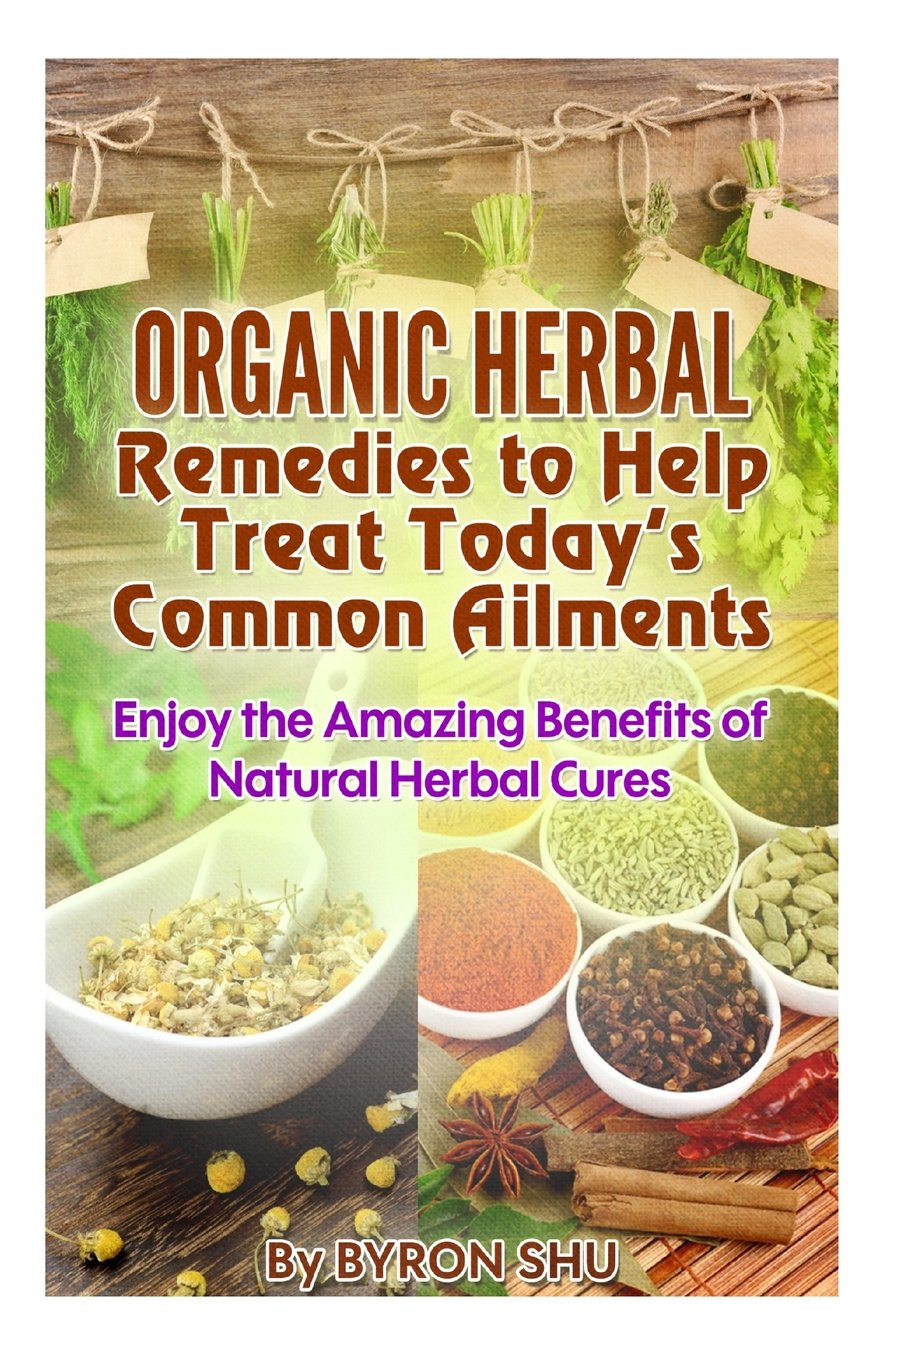 Read Online Organic Herbal Remedies to Help Treat Today's Common Ailments: Enjoy the Amazing Benefits of Natural Herbal Cures PDF